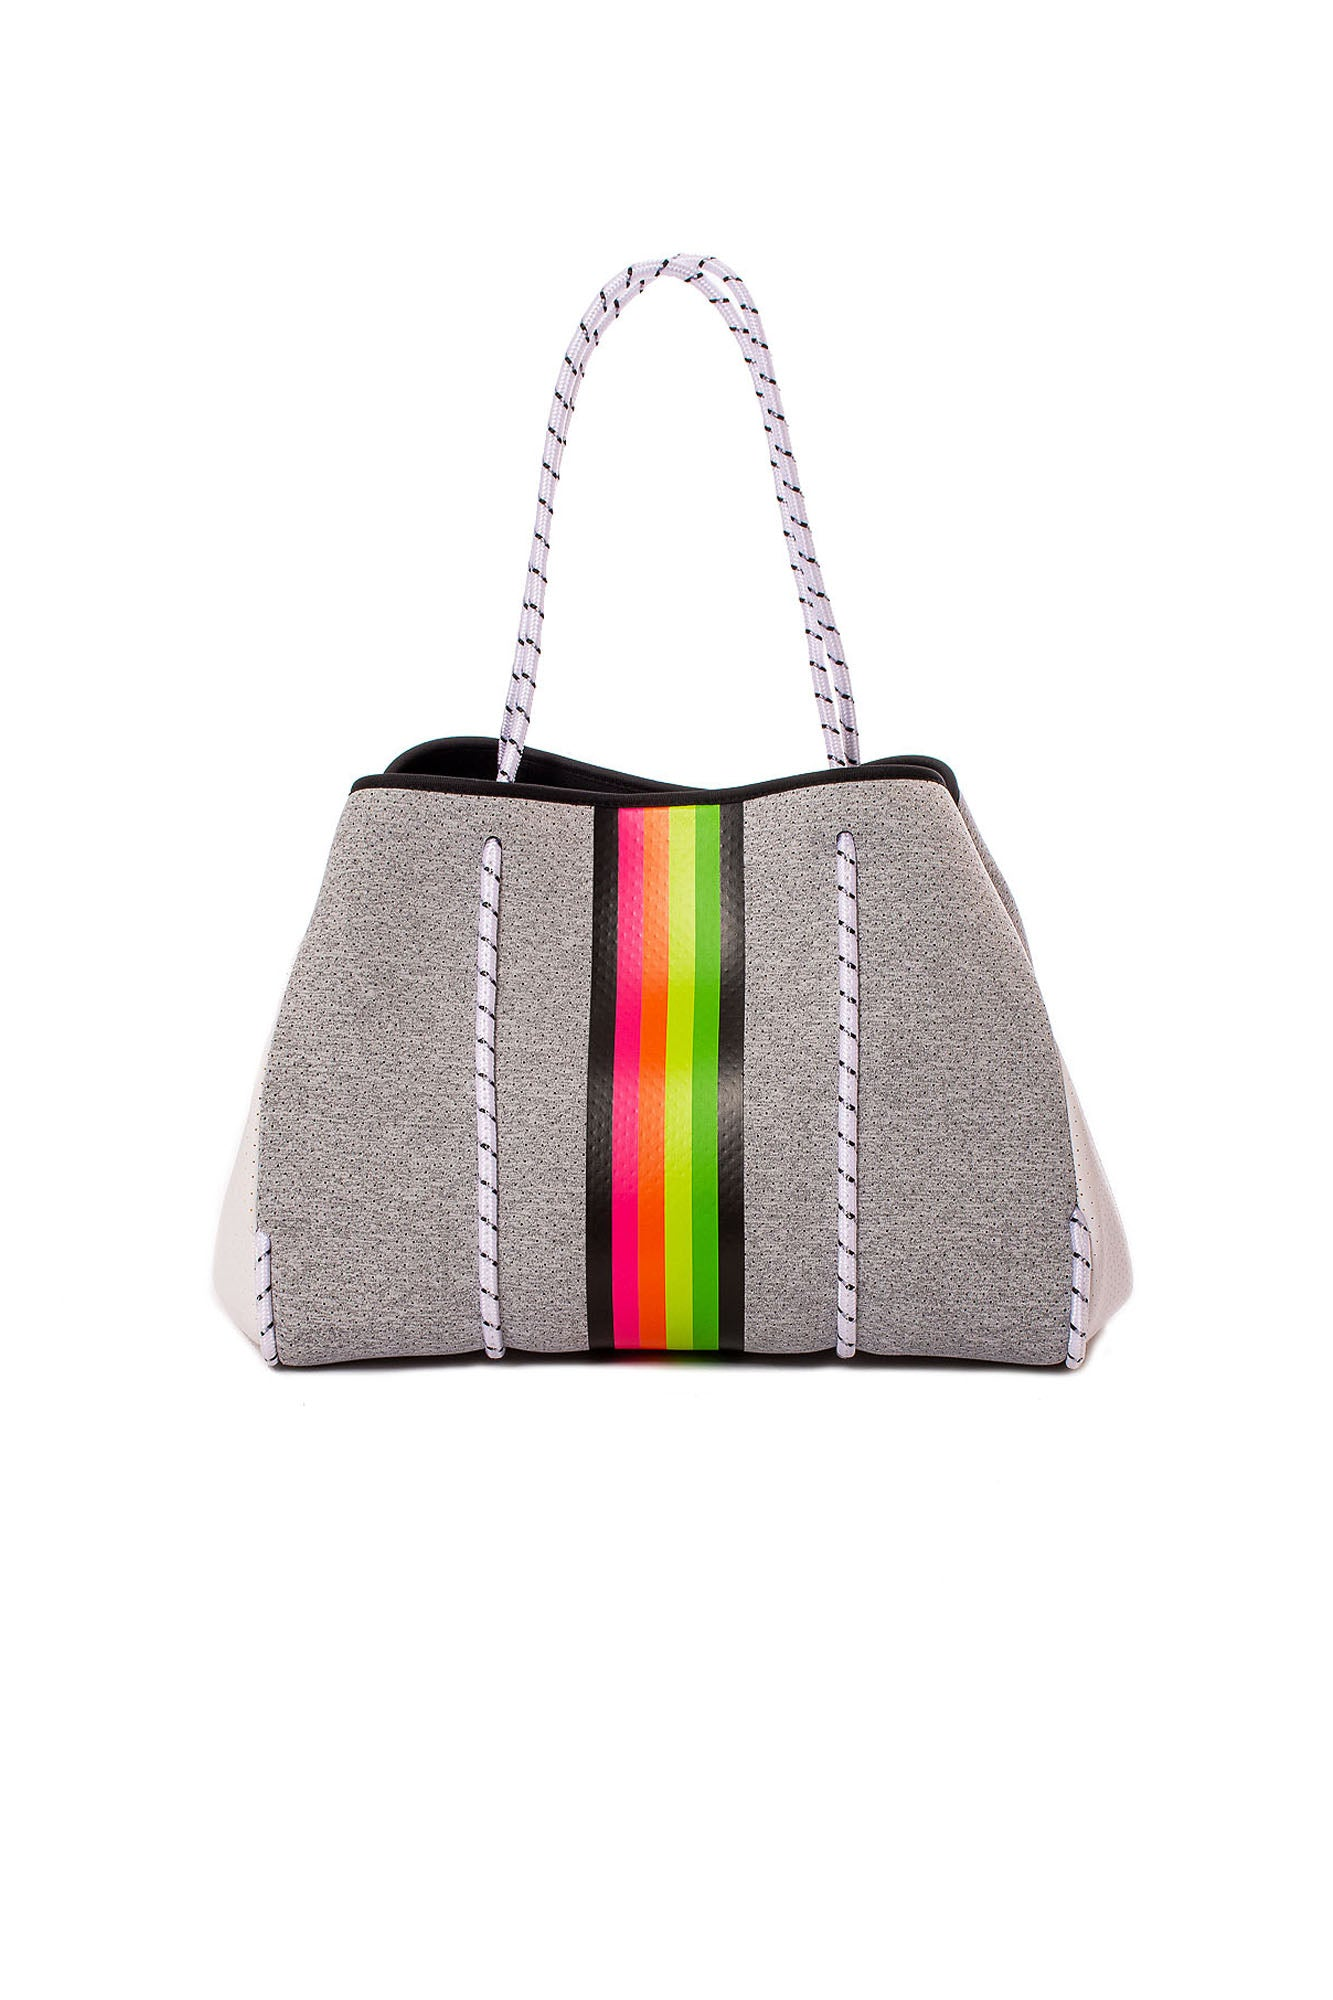 Greyson Glow Tote Bag with/Tethered Removable Wristlet (Style Greyson, Heather Grey w/Stripes) by Haute Shore